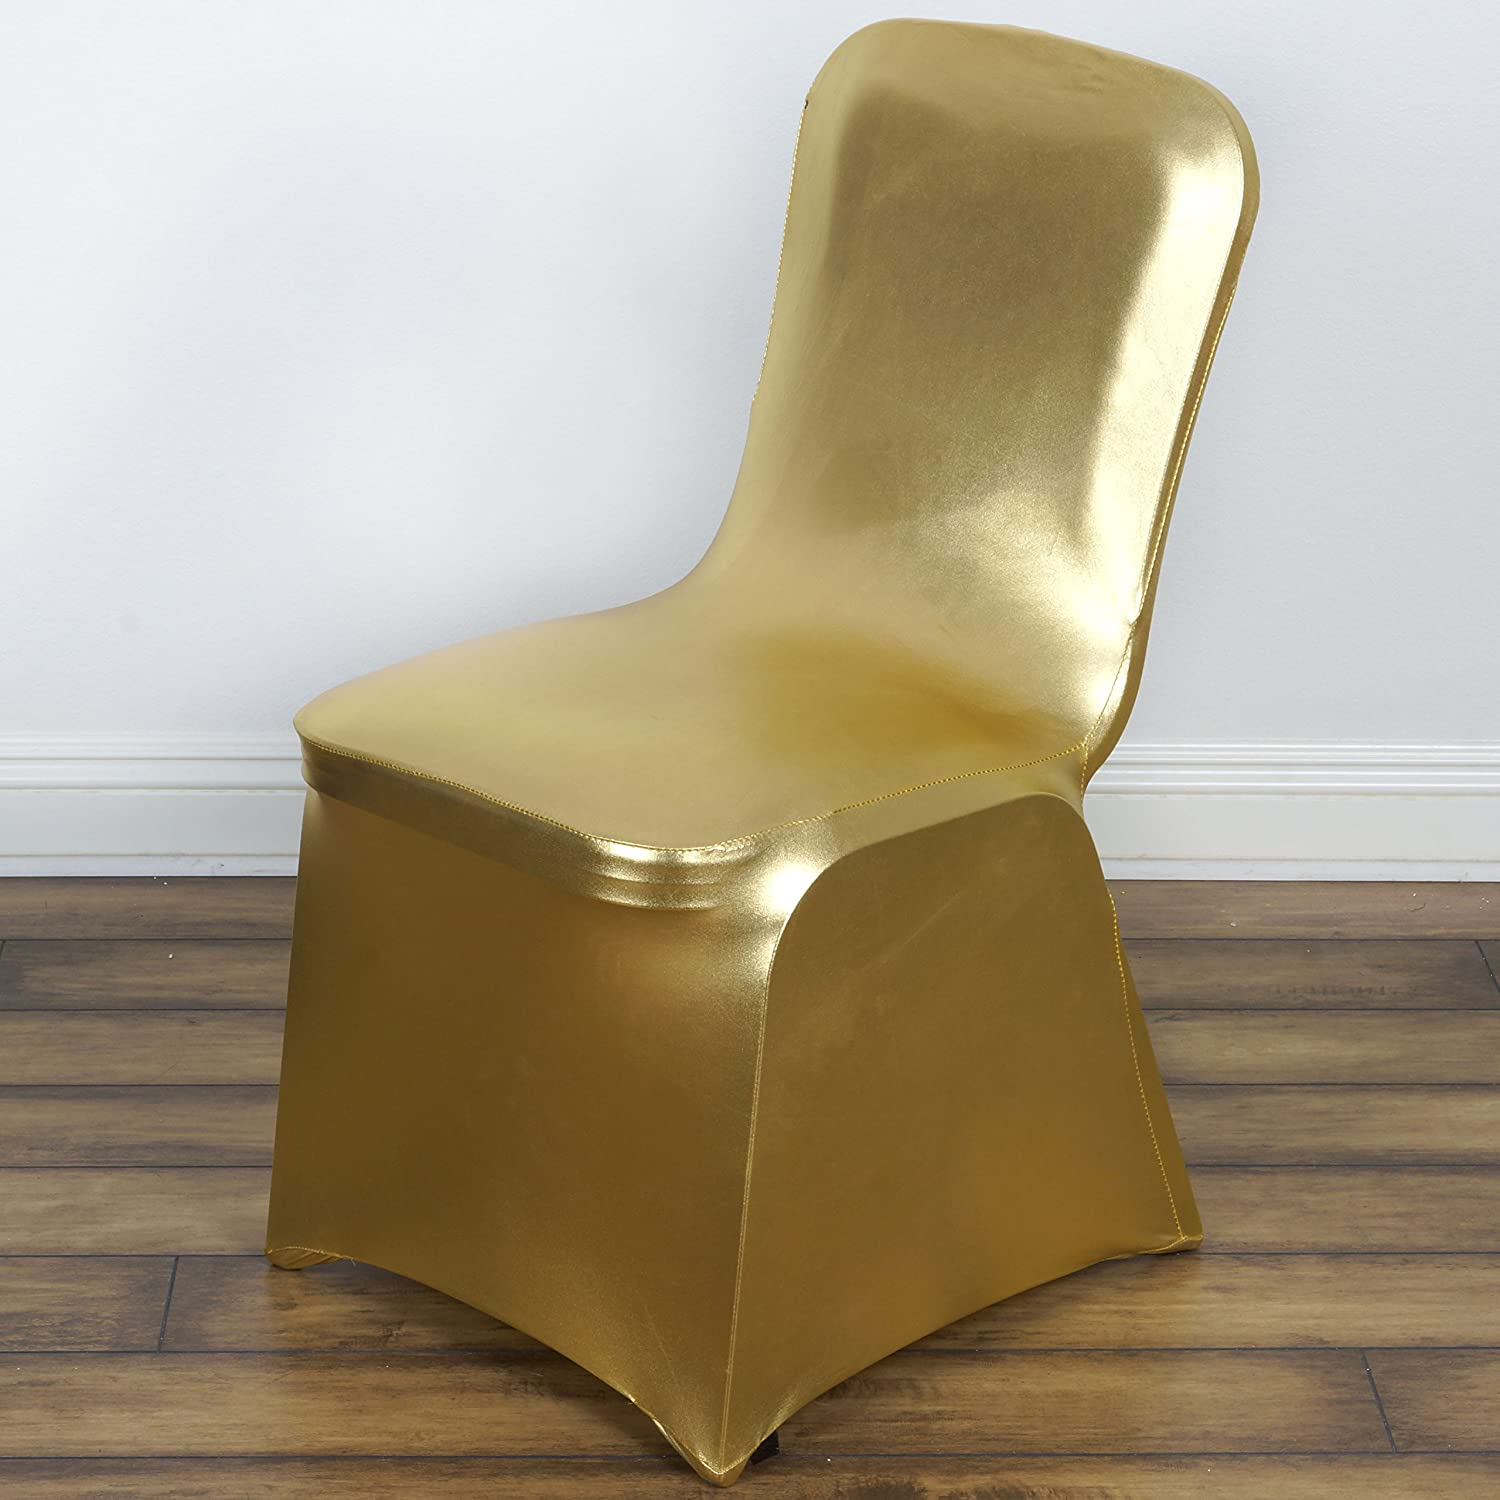 BalsaCircle 10 pcs Gold Metallic Banquet Lame Spandex Stretchable Chair Covers Slipcovers for Wedding Party Reception Decorations